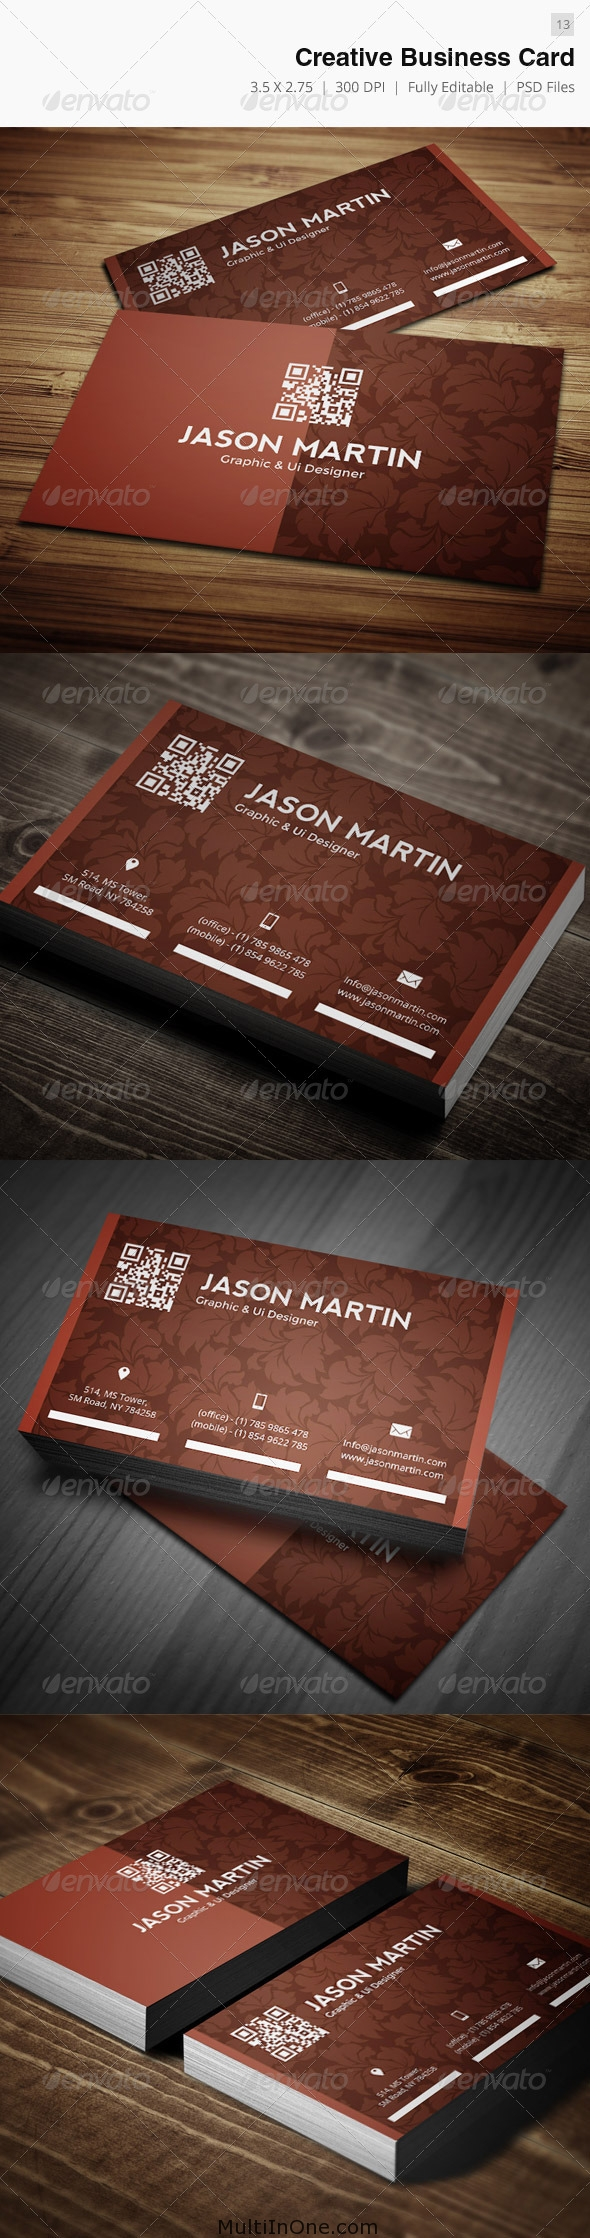 Creative Business Card PSD - Perfect for Portfoliophotography industry(Free Downlo